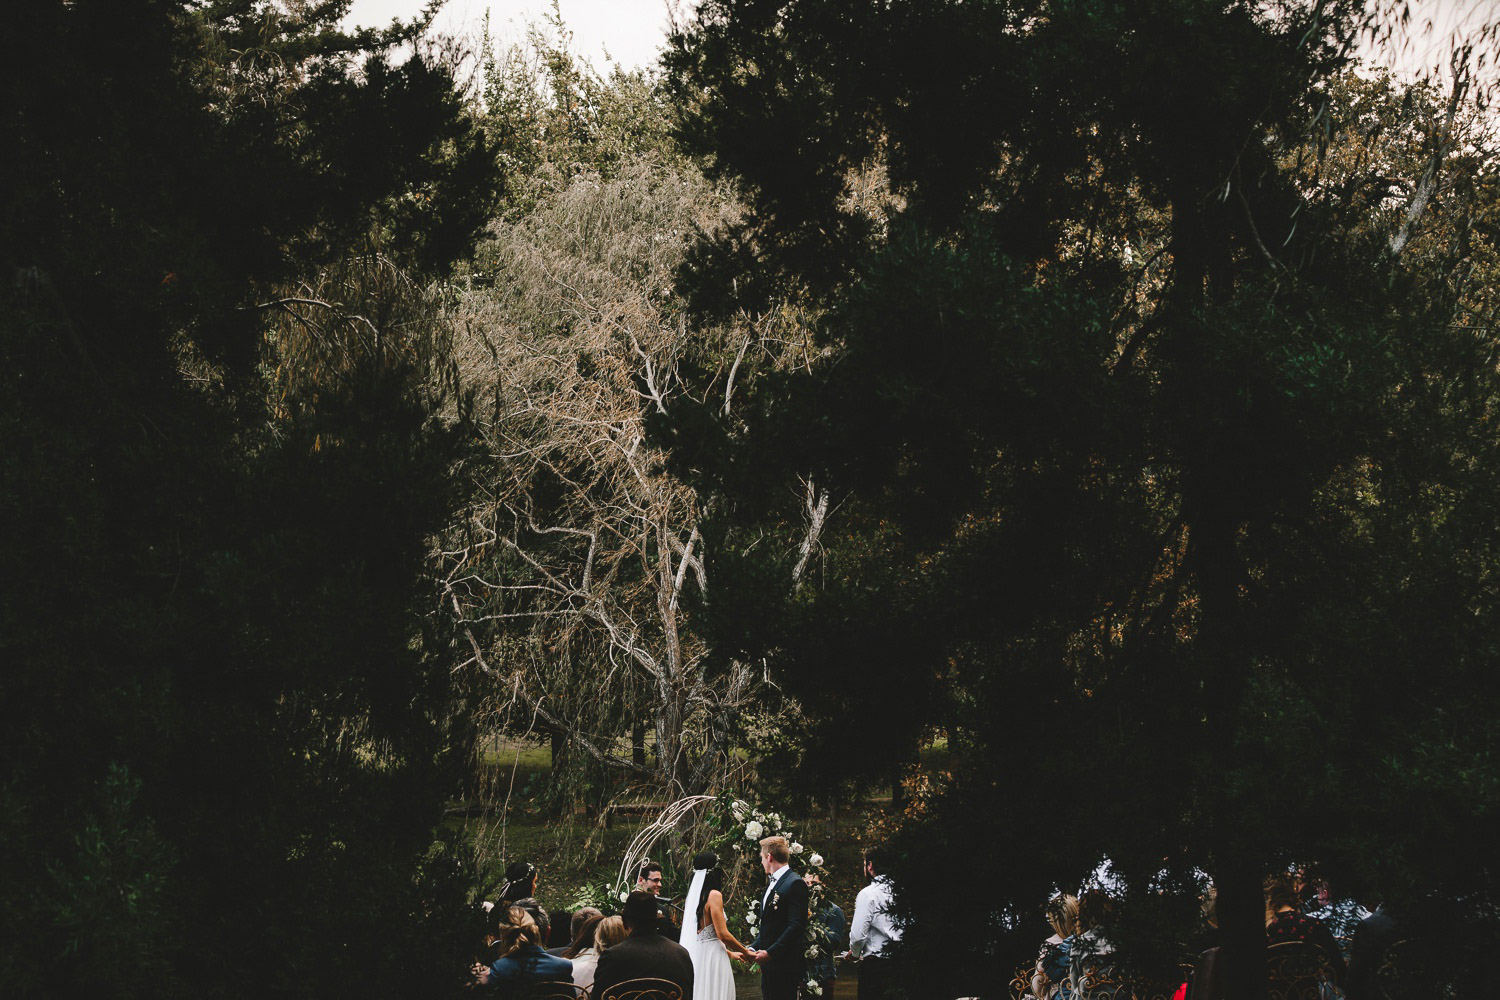 western-cape-photoghers-gen-scott-greyton-wedding-photography-charlie-ray65.jpg